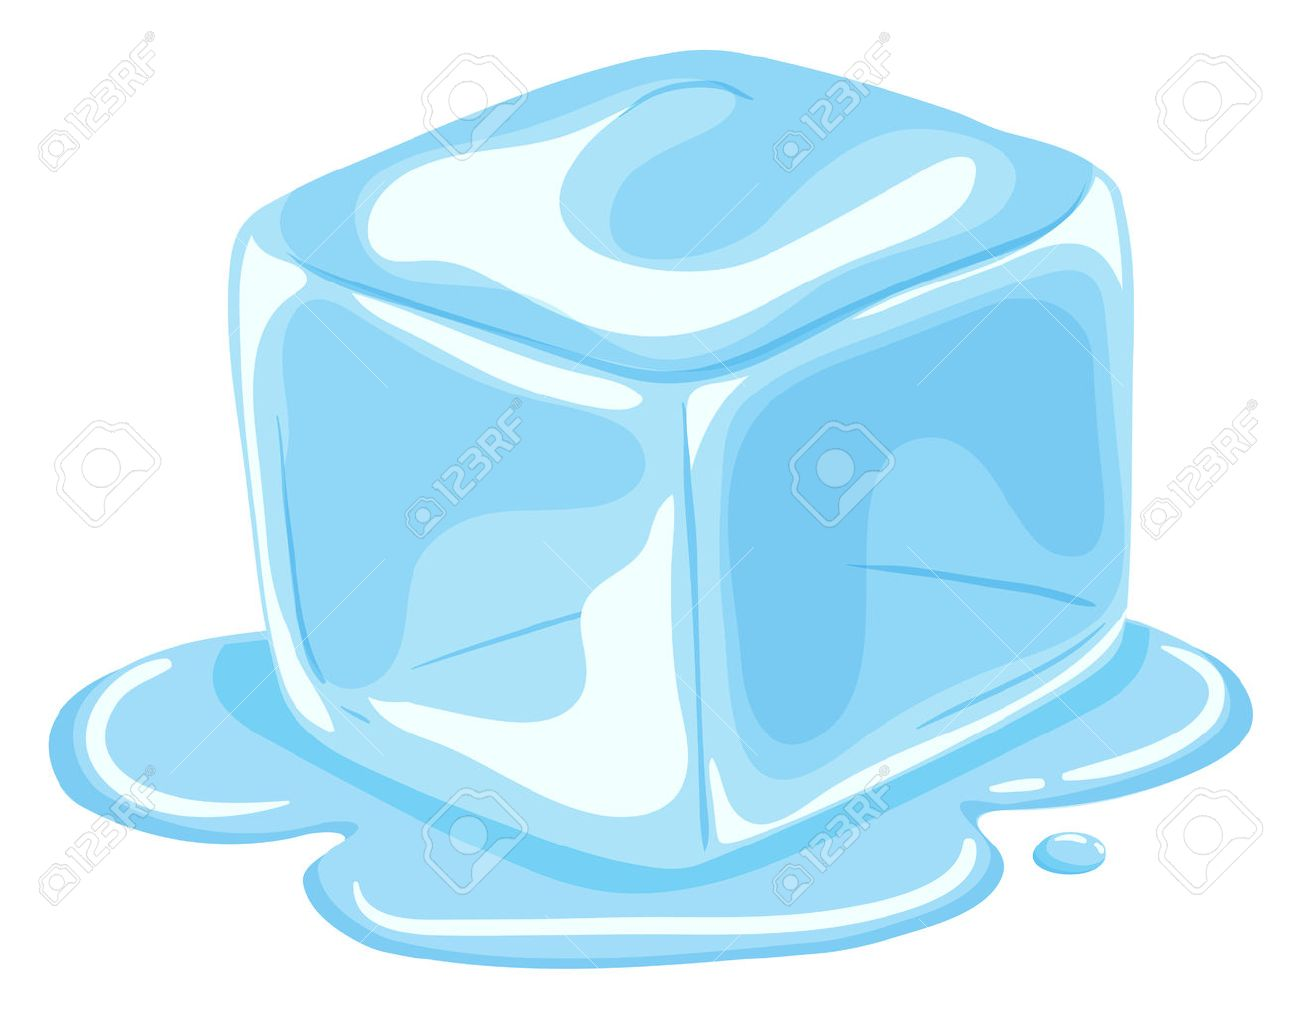 piece of ice cube melting illustration royalty free cliparts rh 123rf com ice cube clip art images ice cube clip art free